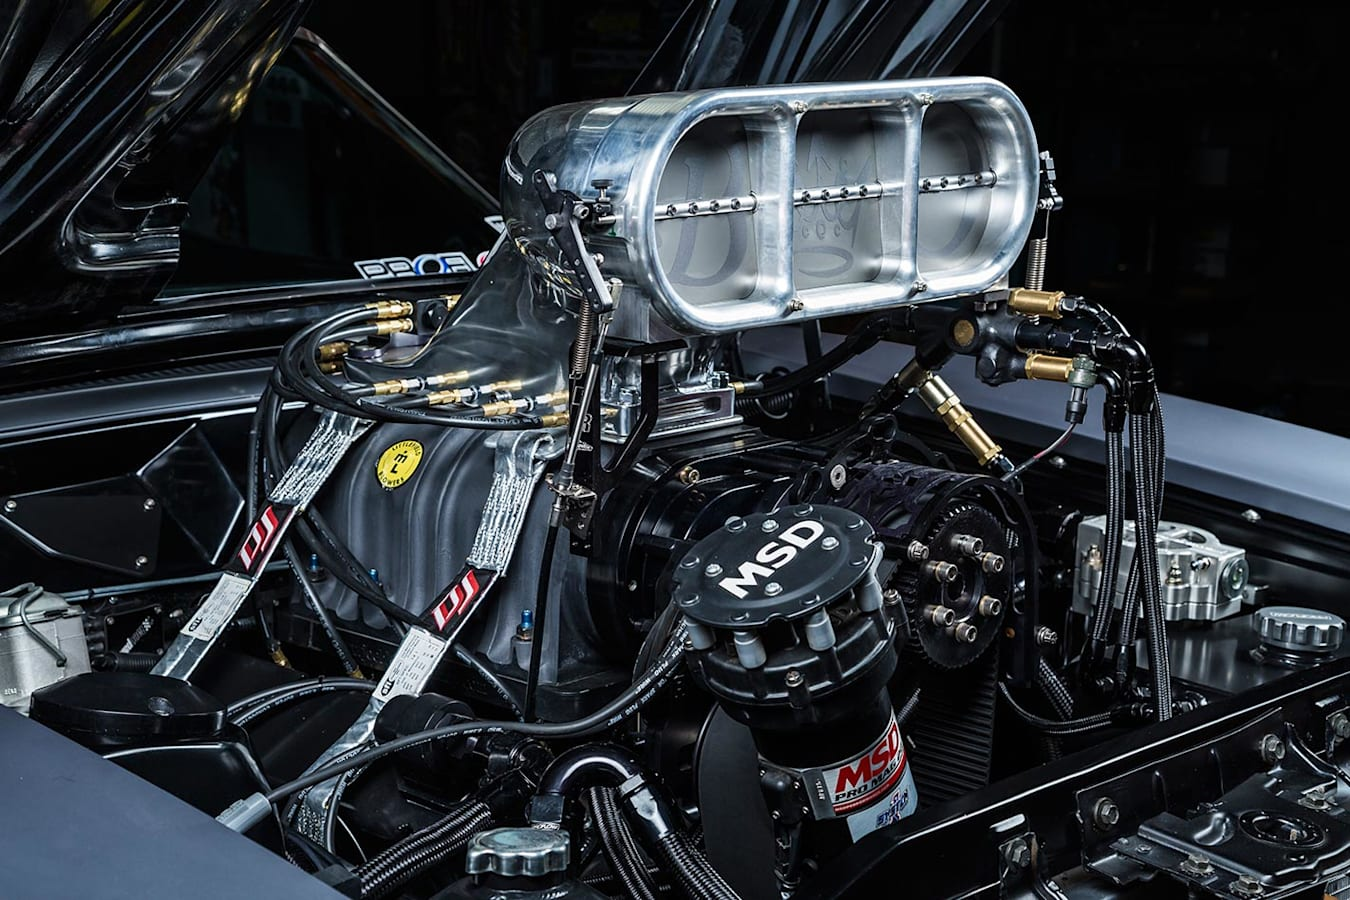 Ford Falcon XA coupe engine